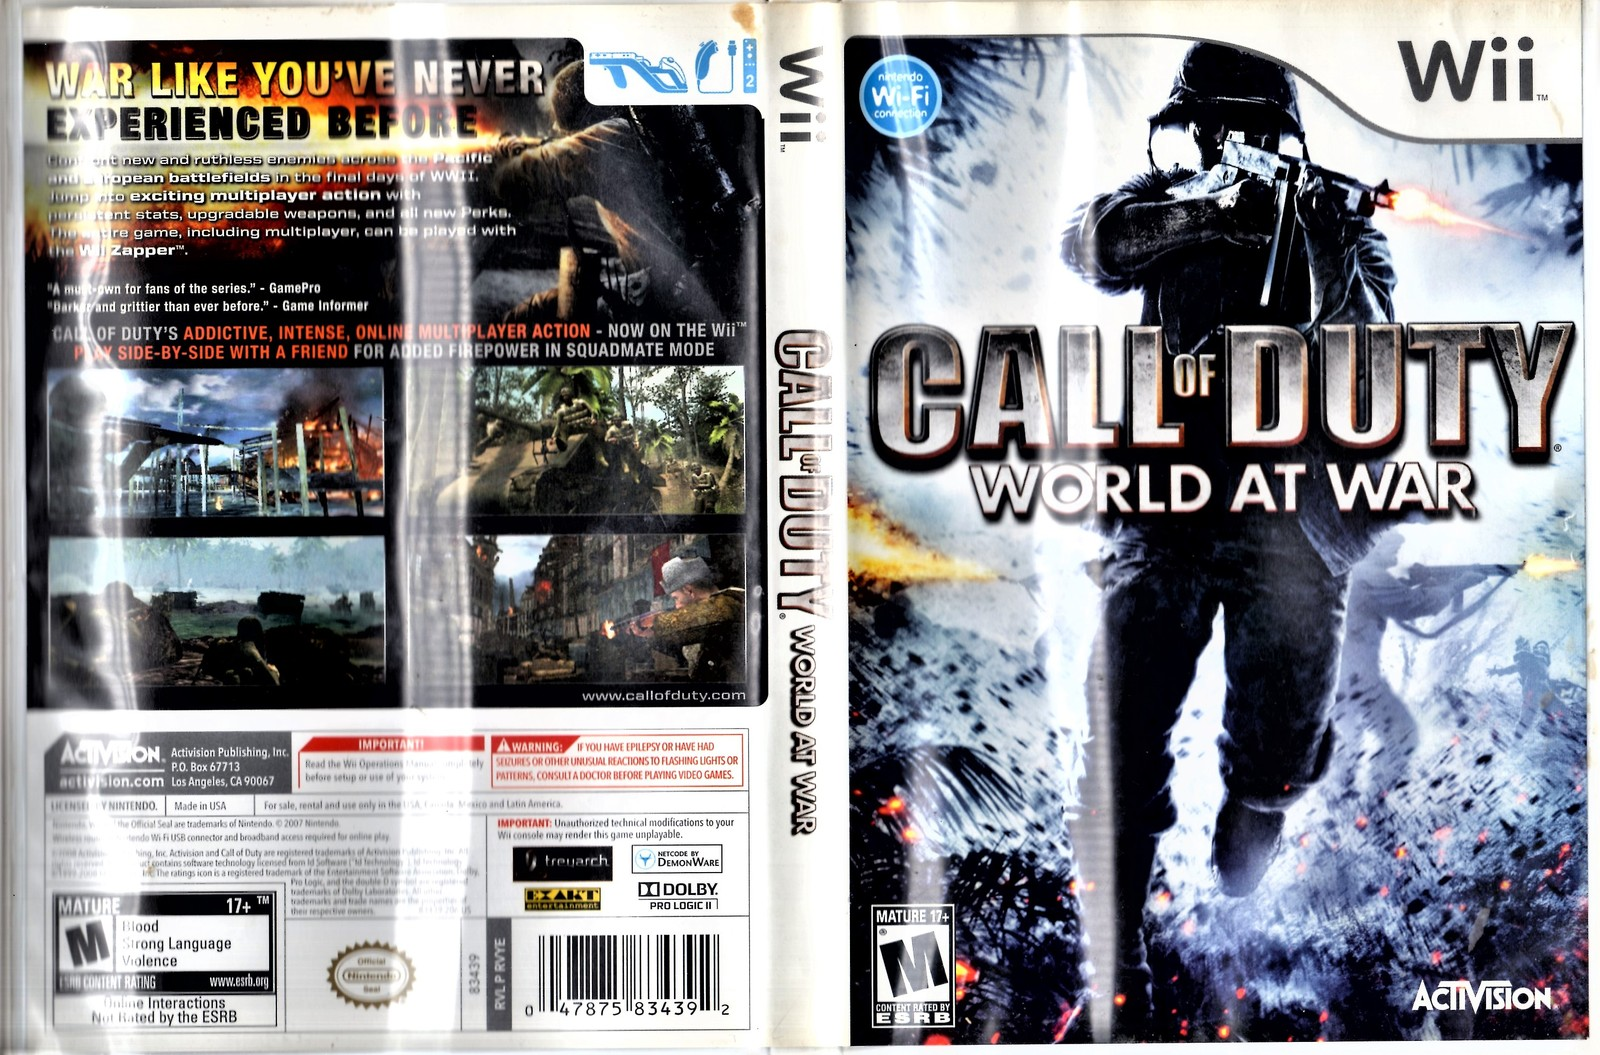 Wii - Call Of Duty World At War image 6